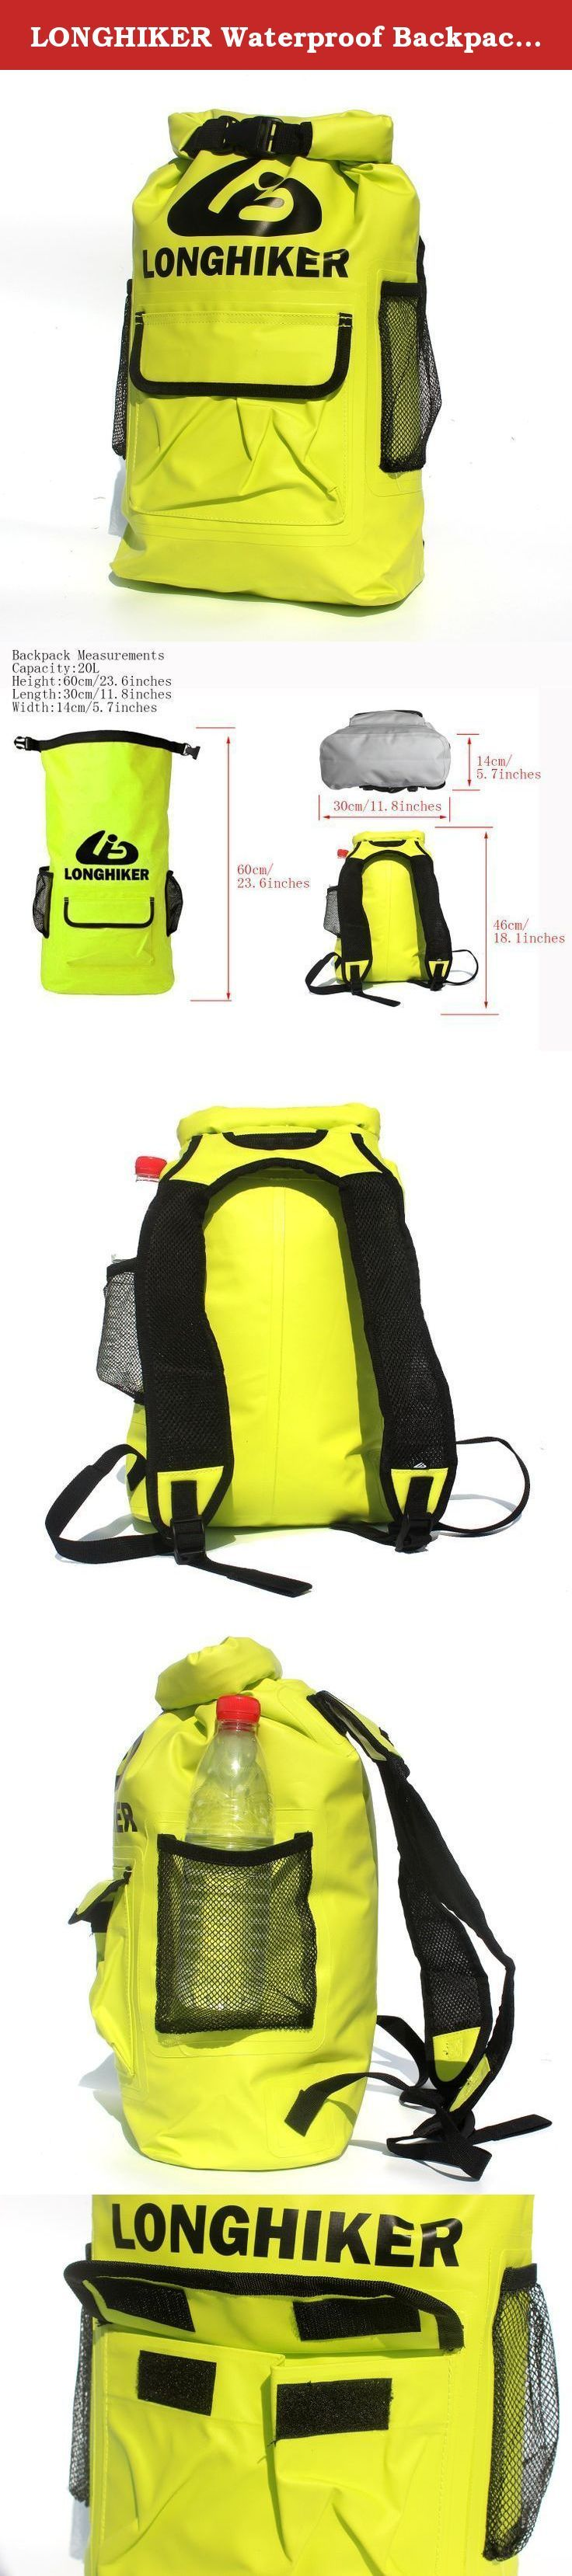 "LONGHIKER Waterproof Backpack Dry Bag -Padded Shoulder Straps-Mesh Side Pockets-Front Pocket.Safety Float for Open Water Swimmers Triathletes Kayakers and Snorkelers (Bright Yellow, 20L). LONGHIKER Young Men's ""Surf stash"" roll top sealable dry bag with a large main compartment, 3 exterior storage pockets, adjustable external gear straps, 1 interior zip mesh pockets for organization, and padded shoulder straps. Keep your gear dry on the water with this LONGHIKER Waterproof Backpack..."